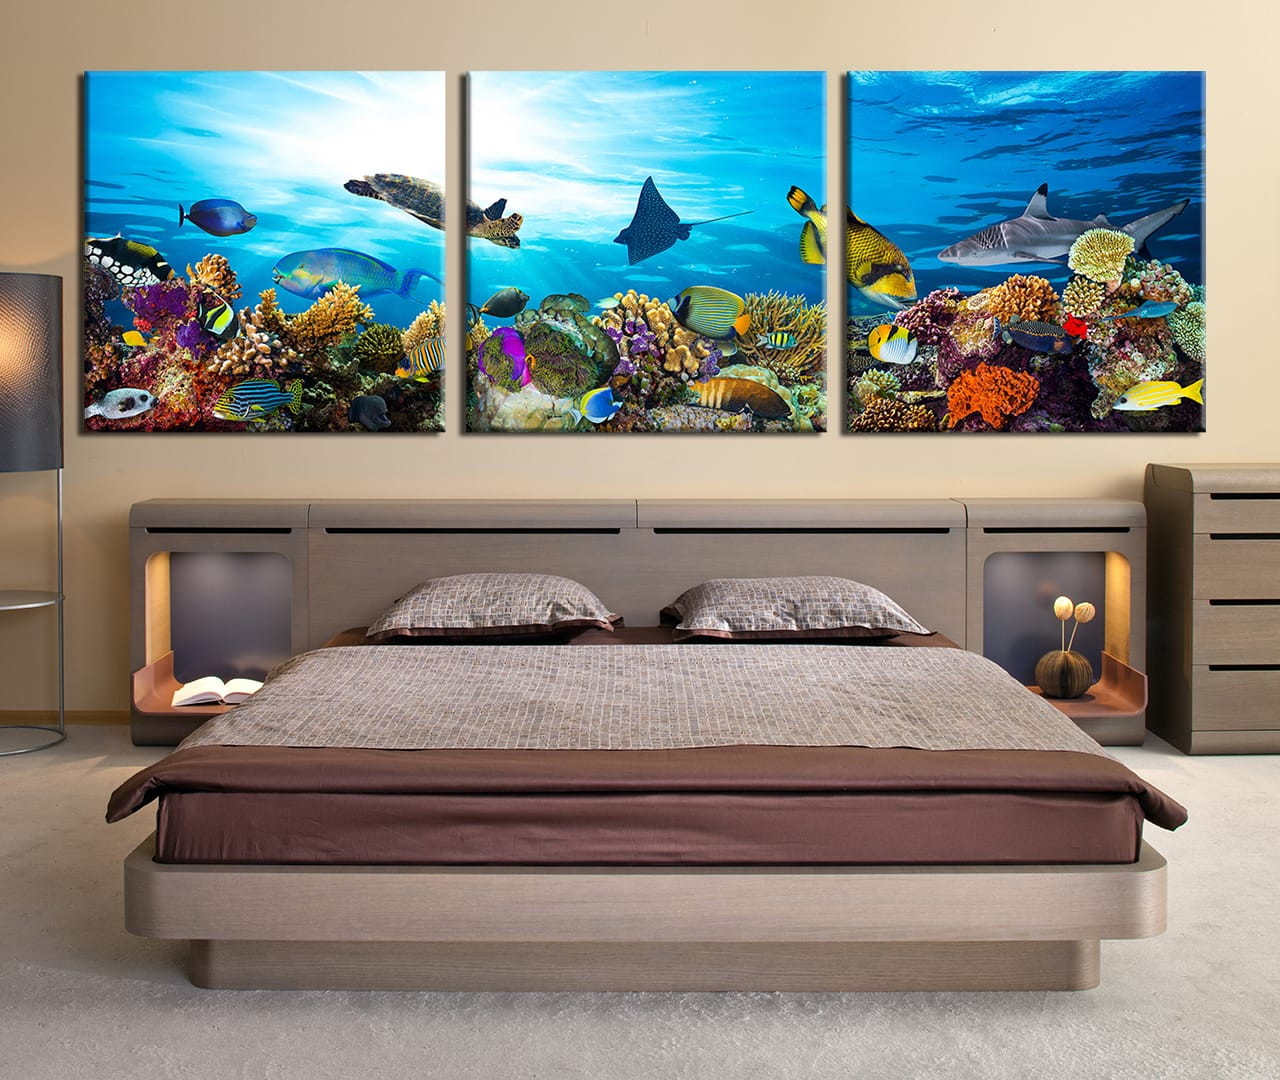 3 piece canvas wall art fish large pictures turtle multi panel 3 piece canvas wall decor bedroom large canvas fish huge canvas art turtle amipublicfo Gallery